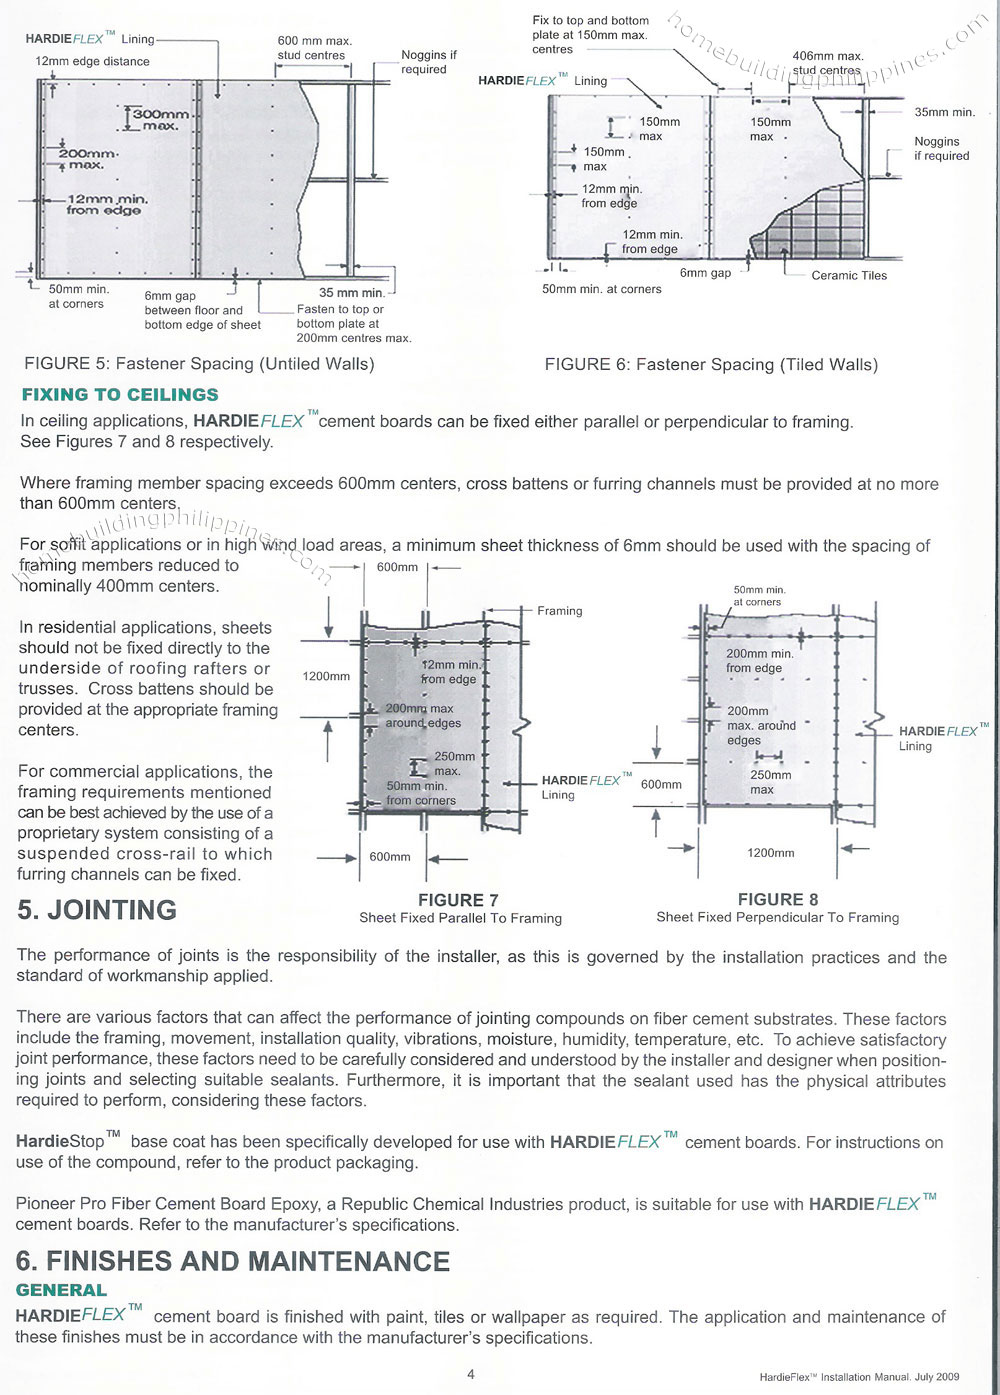 Hardiflex Durable Fiber Cement Board Manual Philippines